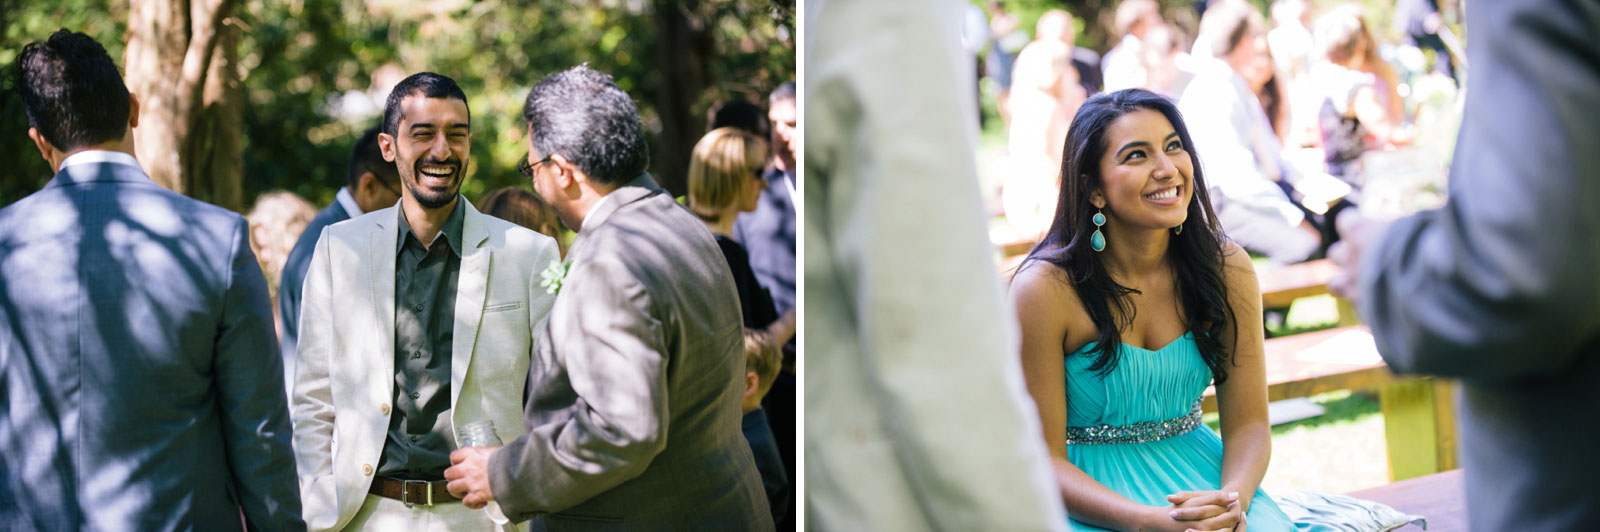 guests arriving and chatting at garden wedding ceremony at Mass Audubon's wildlife sanctuary